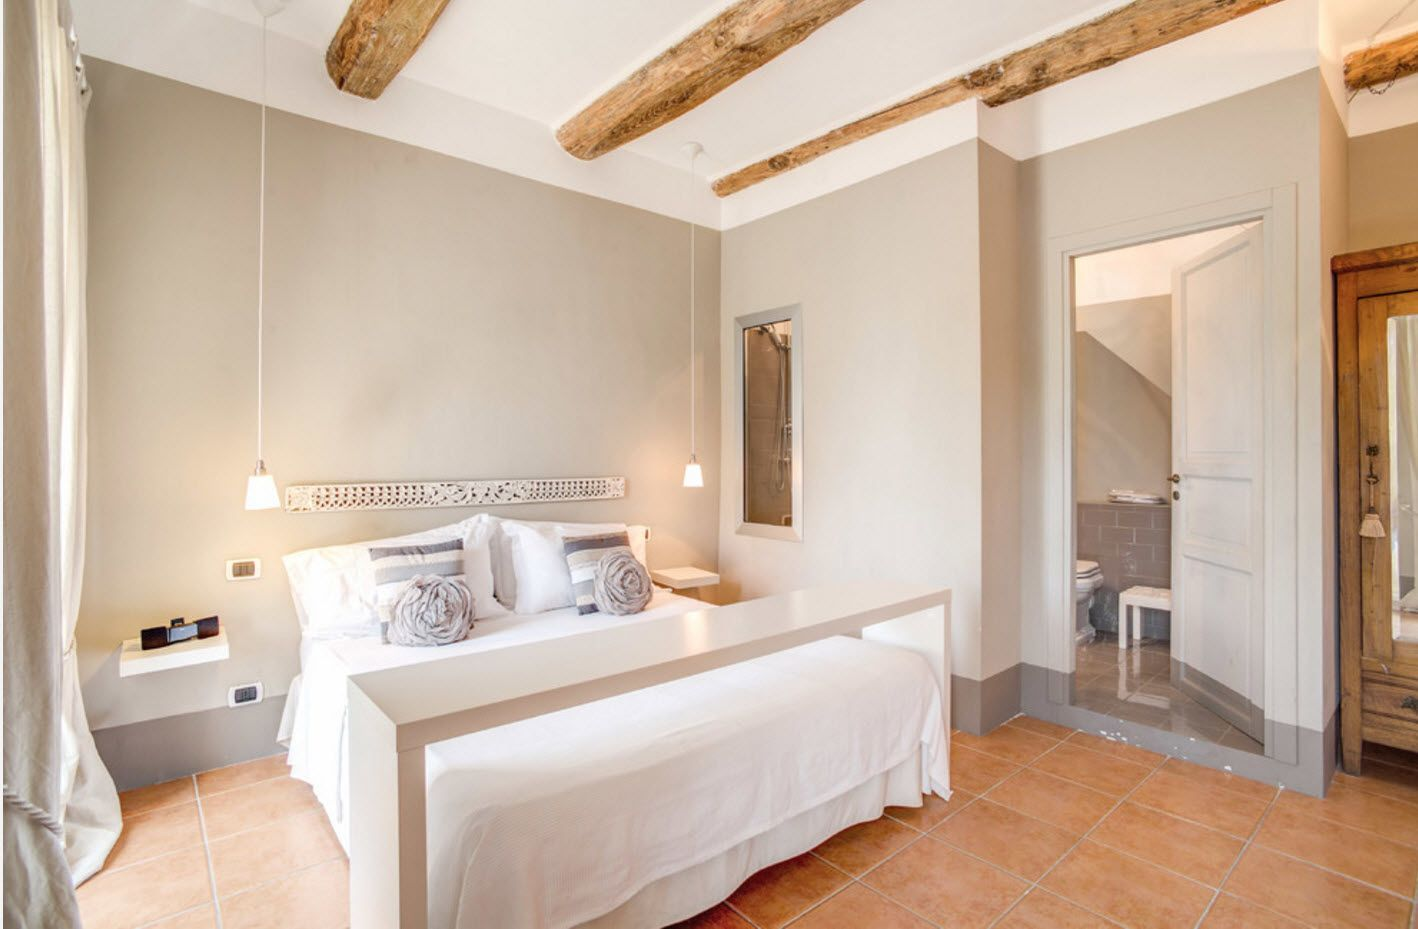 Ceiling beams of large logs in the modern Scandinavian style bedroom image